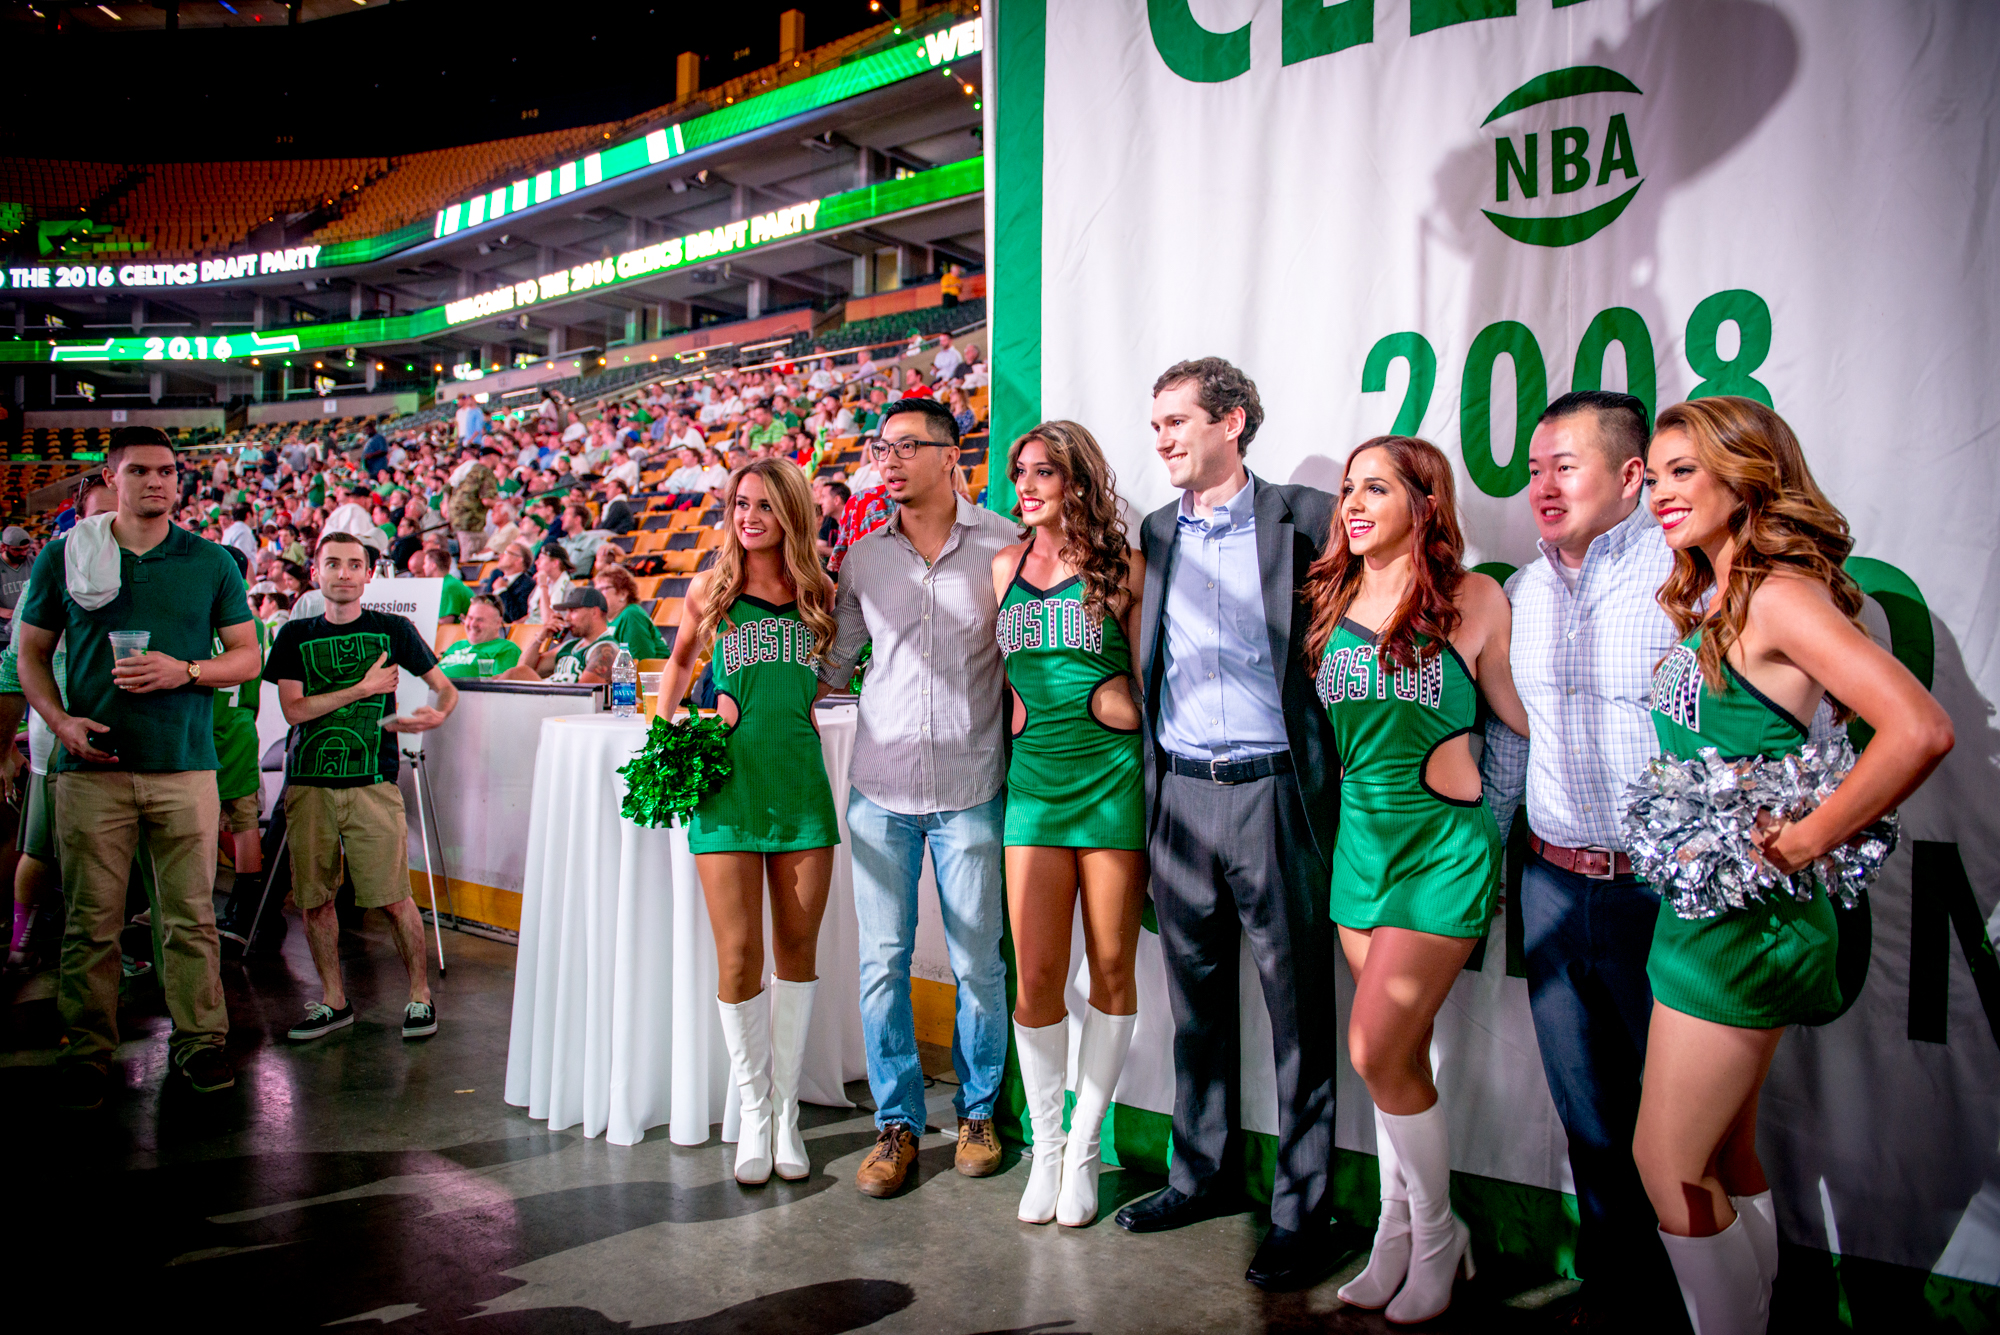 Celtics_Draft_Party_062316-166.jpg